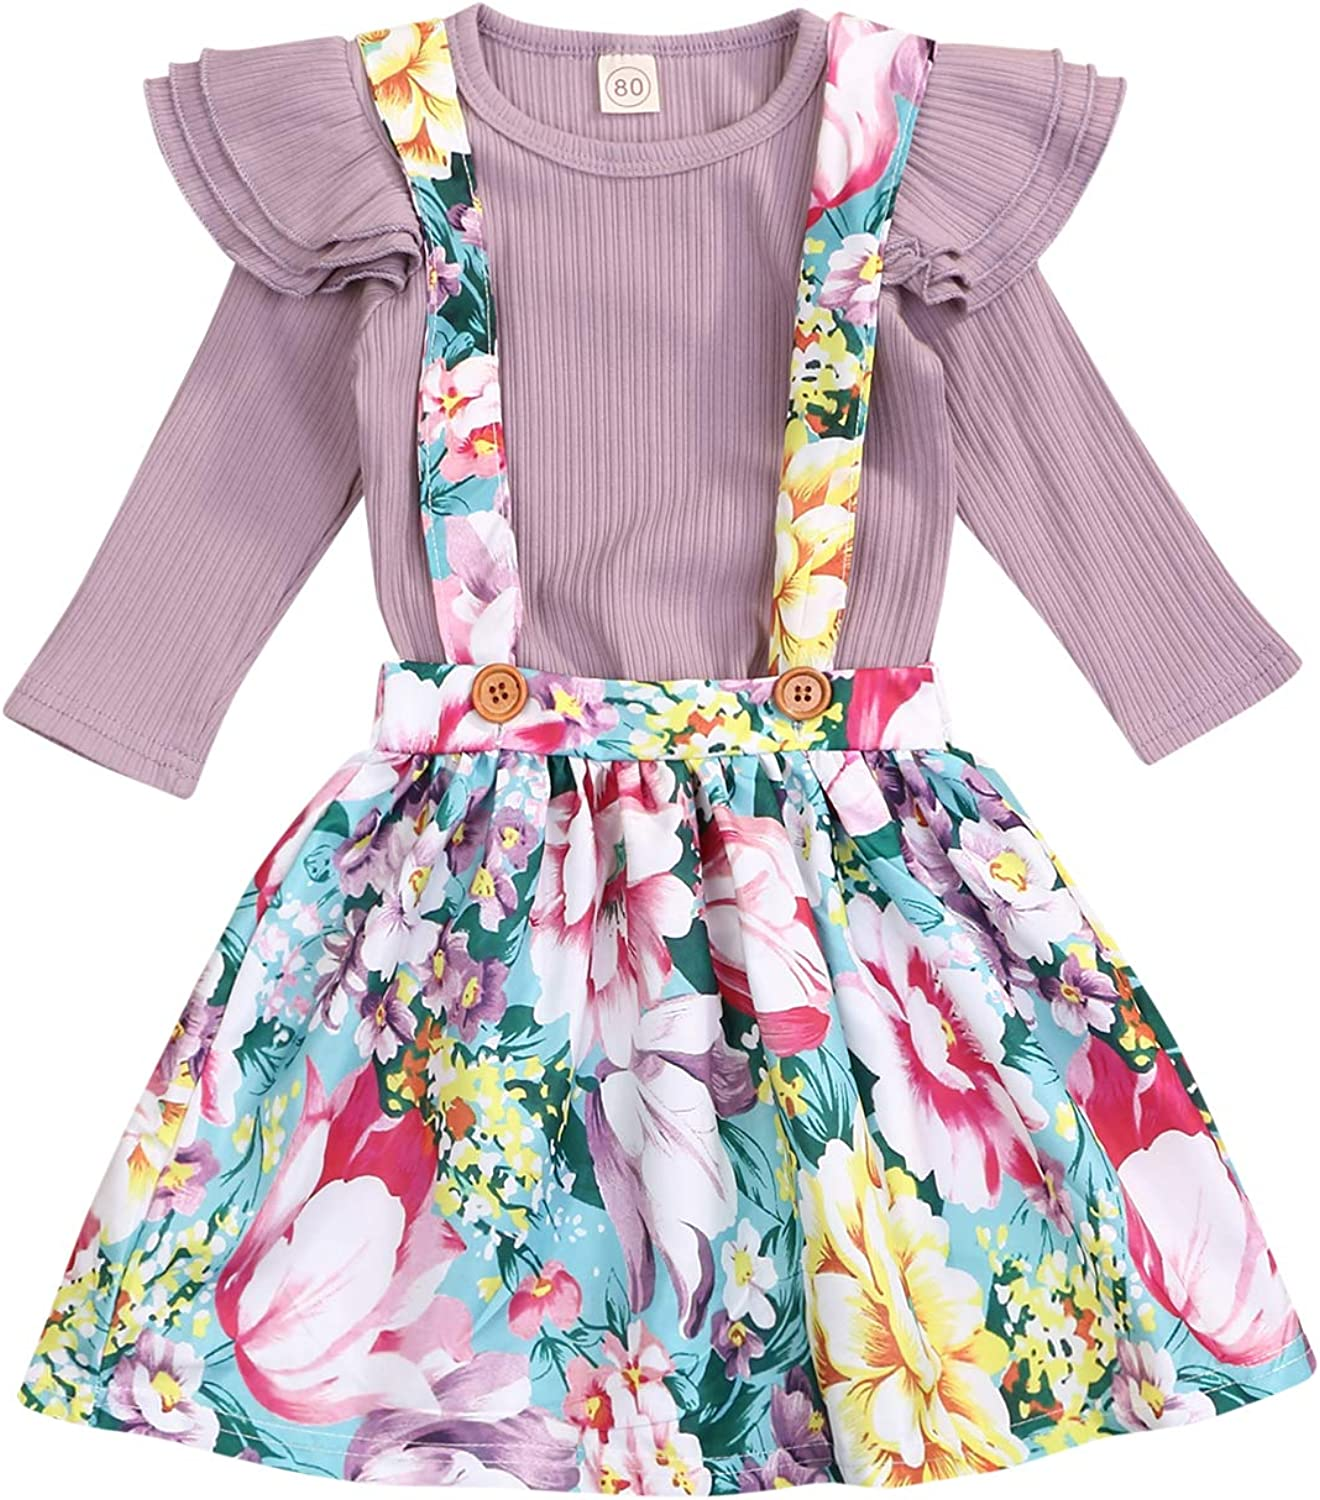 Kids Toddler Baby Girls Skirt Set Outfit Ruffle Long Sleeve T-Shirt Top+Floral Strap Skirt Tutu Dresses Fall Clothes